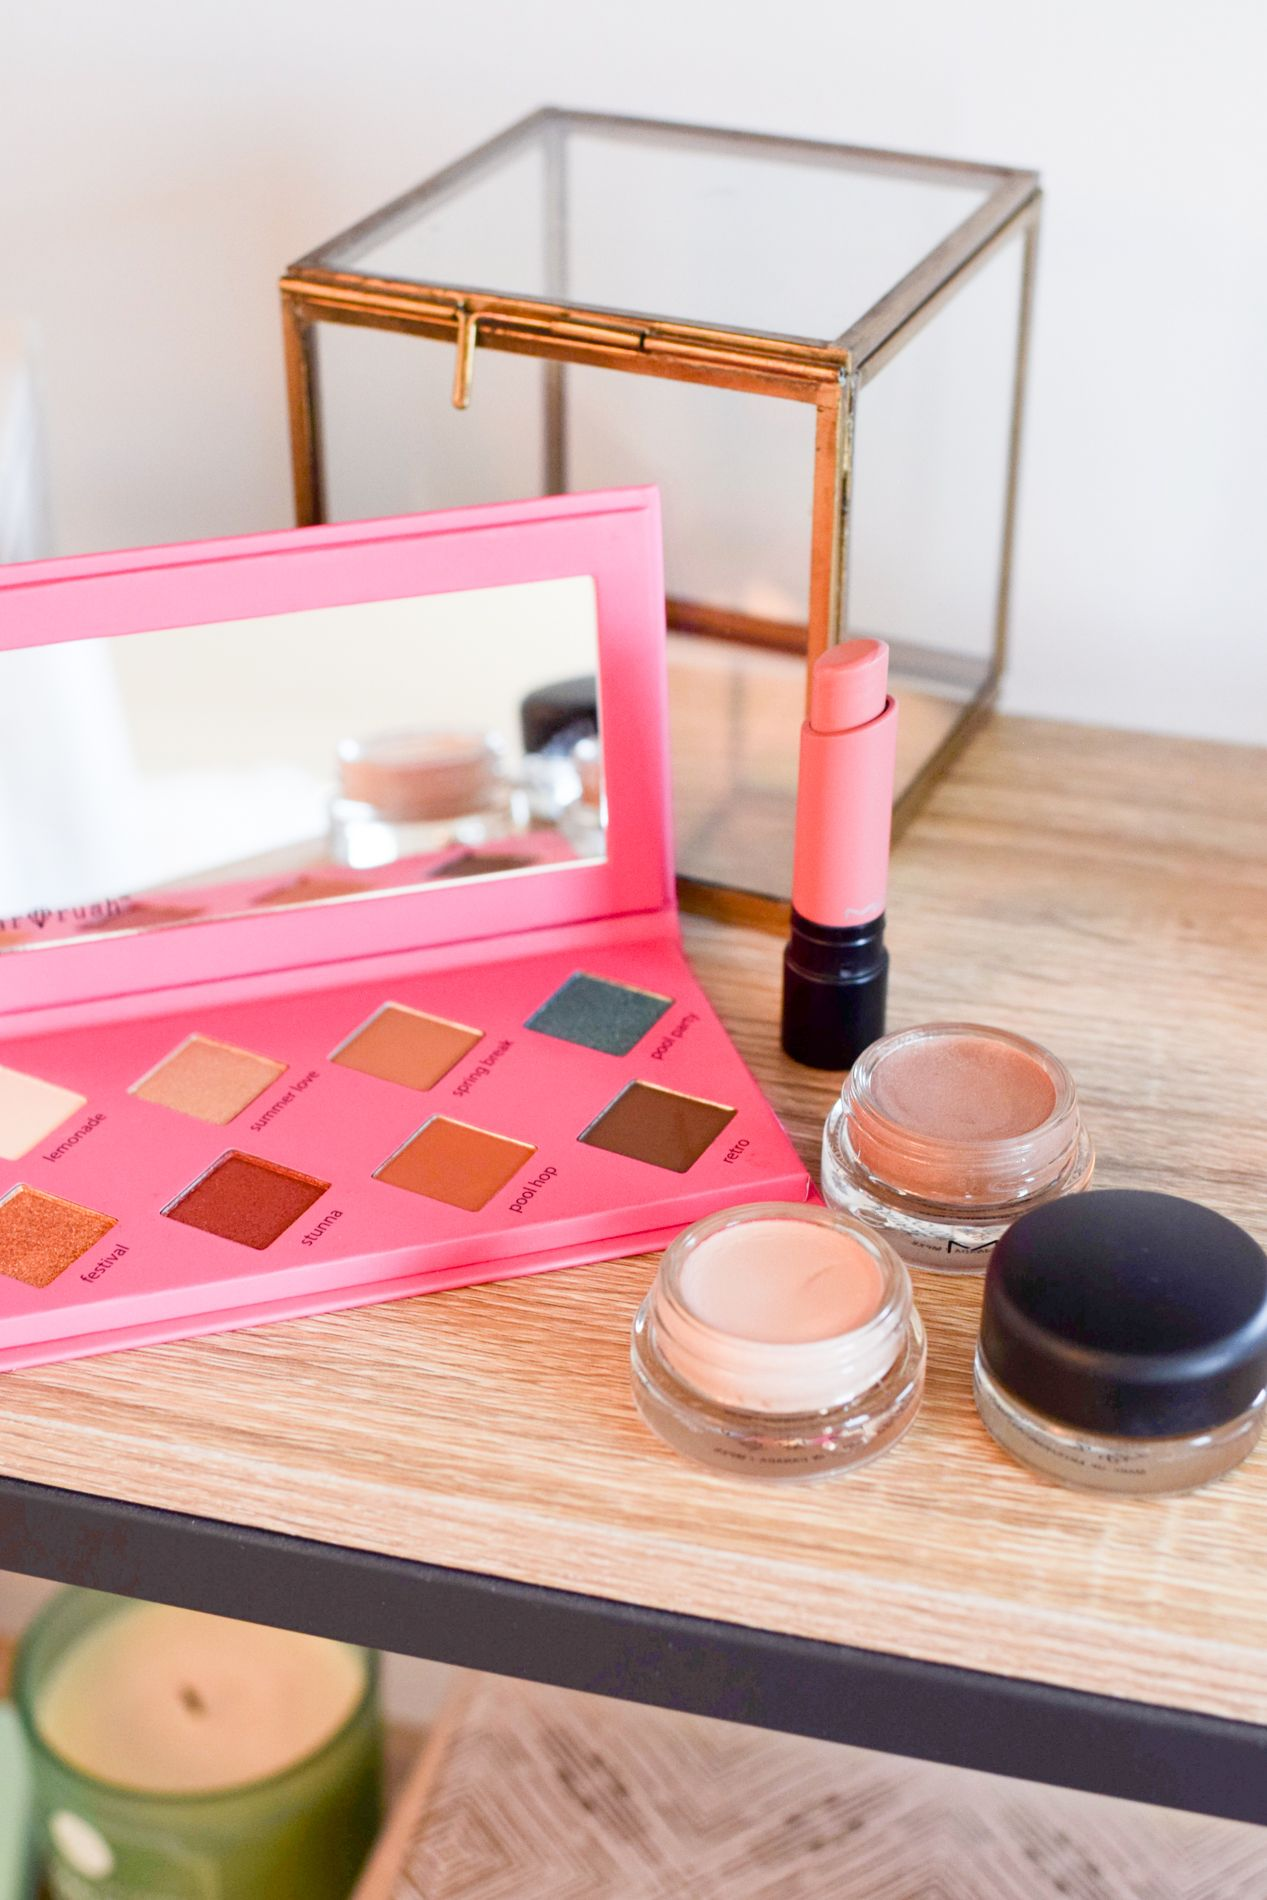 A musthave makeup product + a new palette from Ulta in